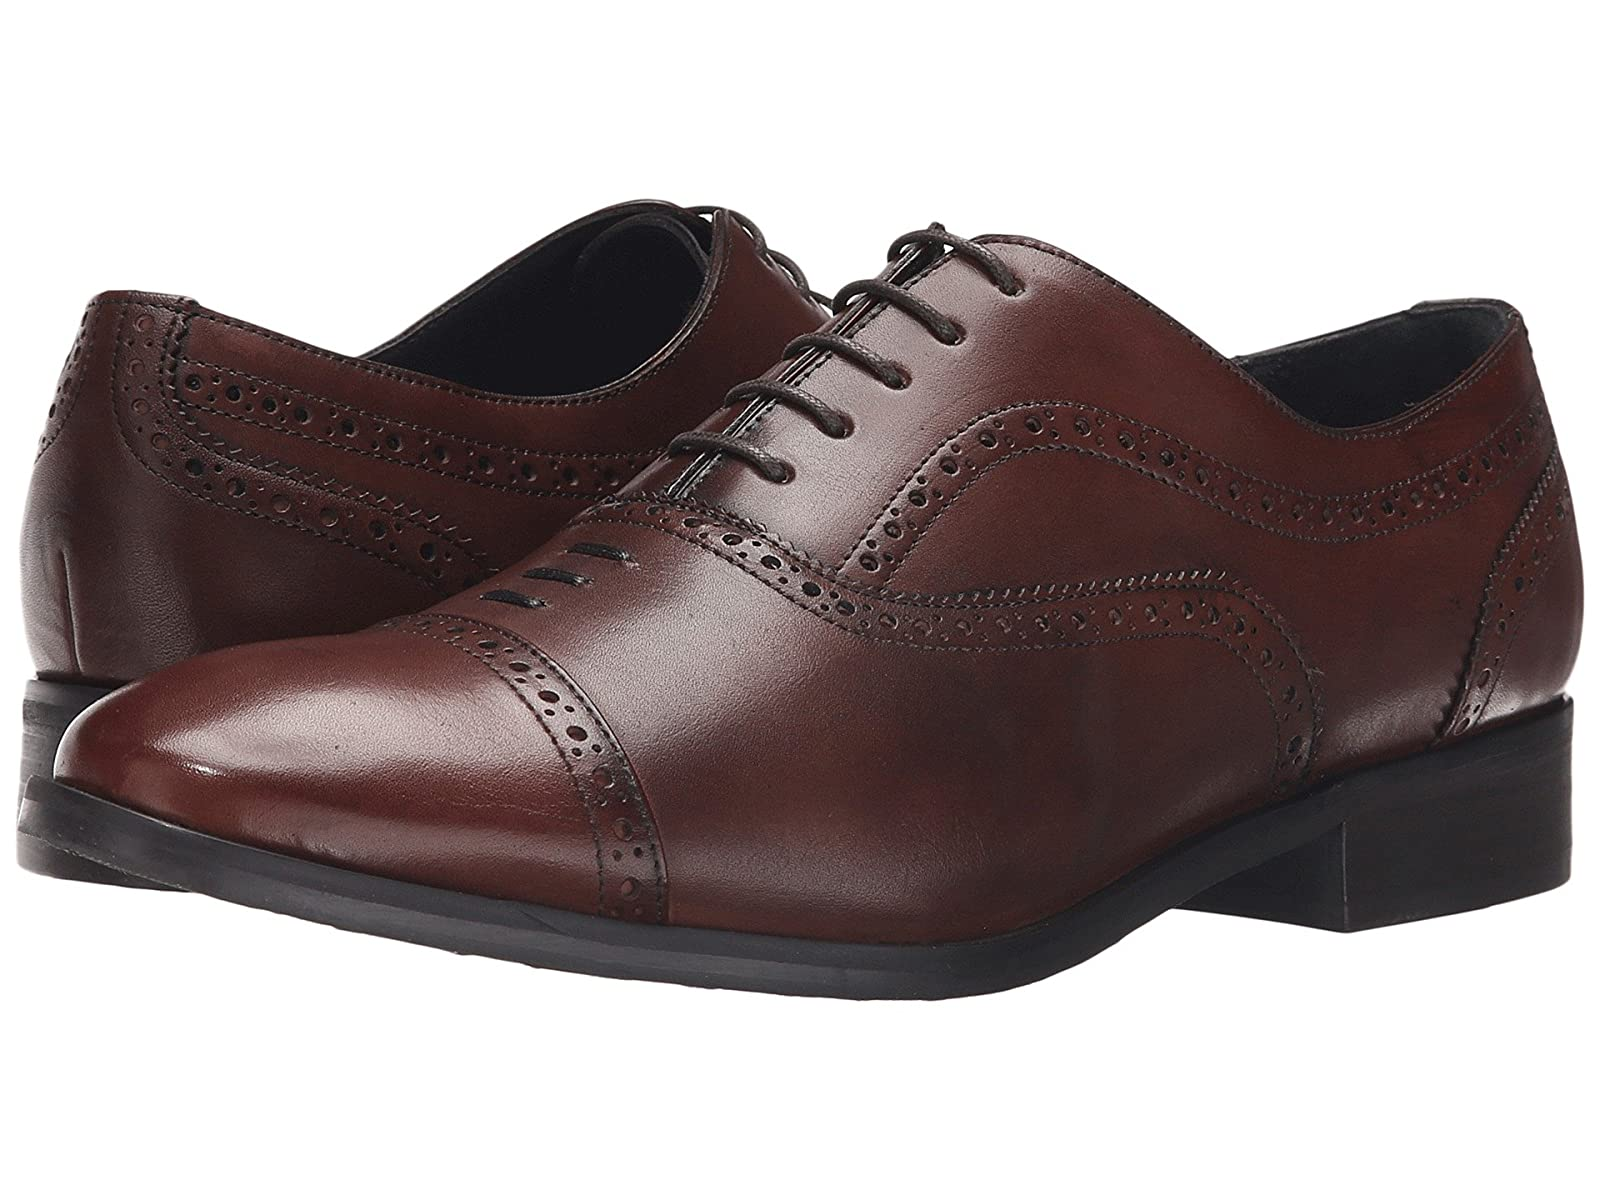 Messico LoretoCheap and distinctive eye-catching shoes